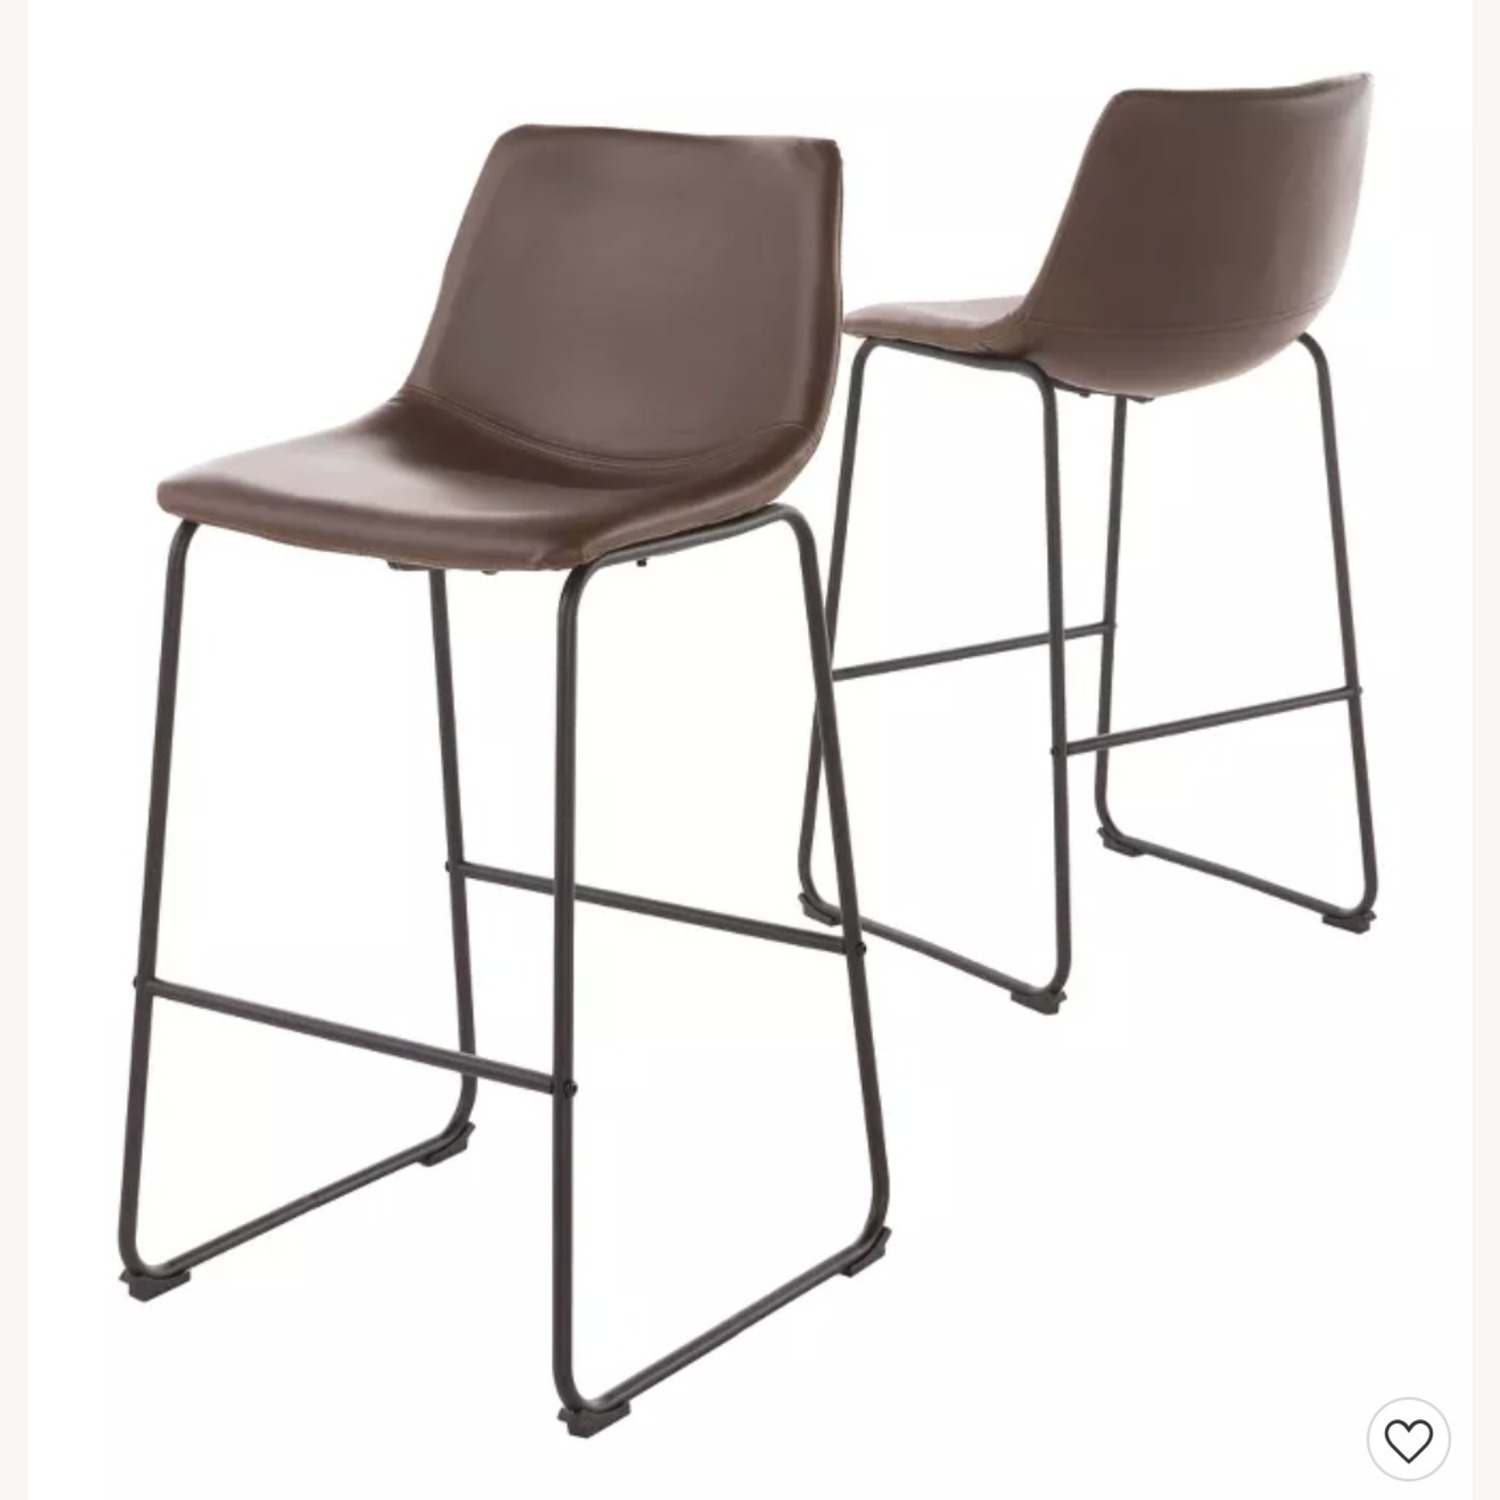 Target Faux Leather Barstools in Vintage Brown (Set of 2) - image-1